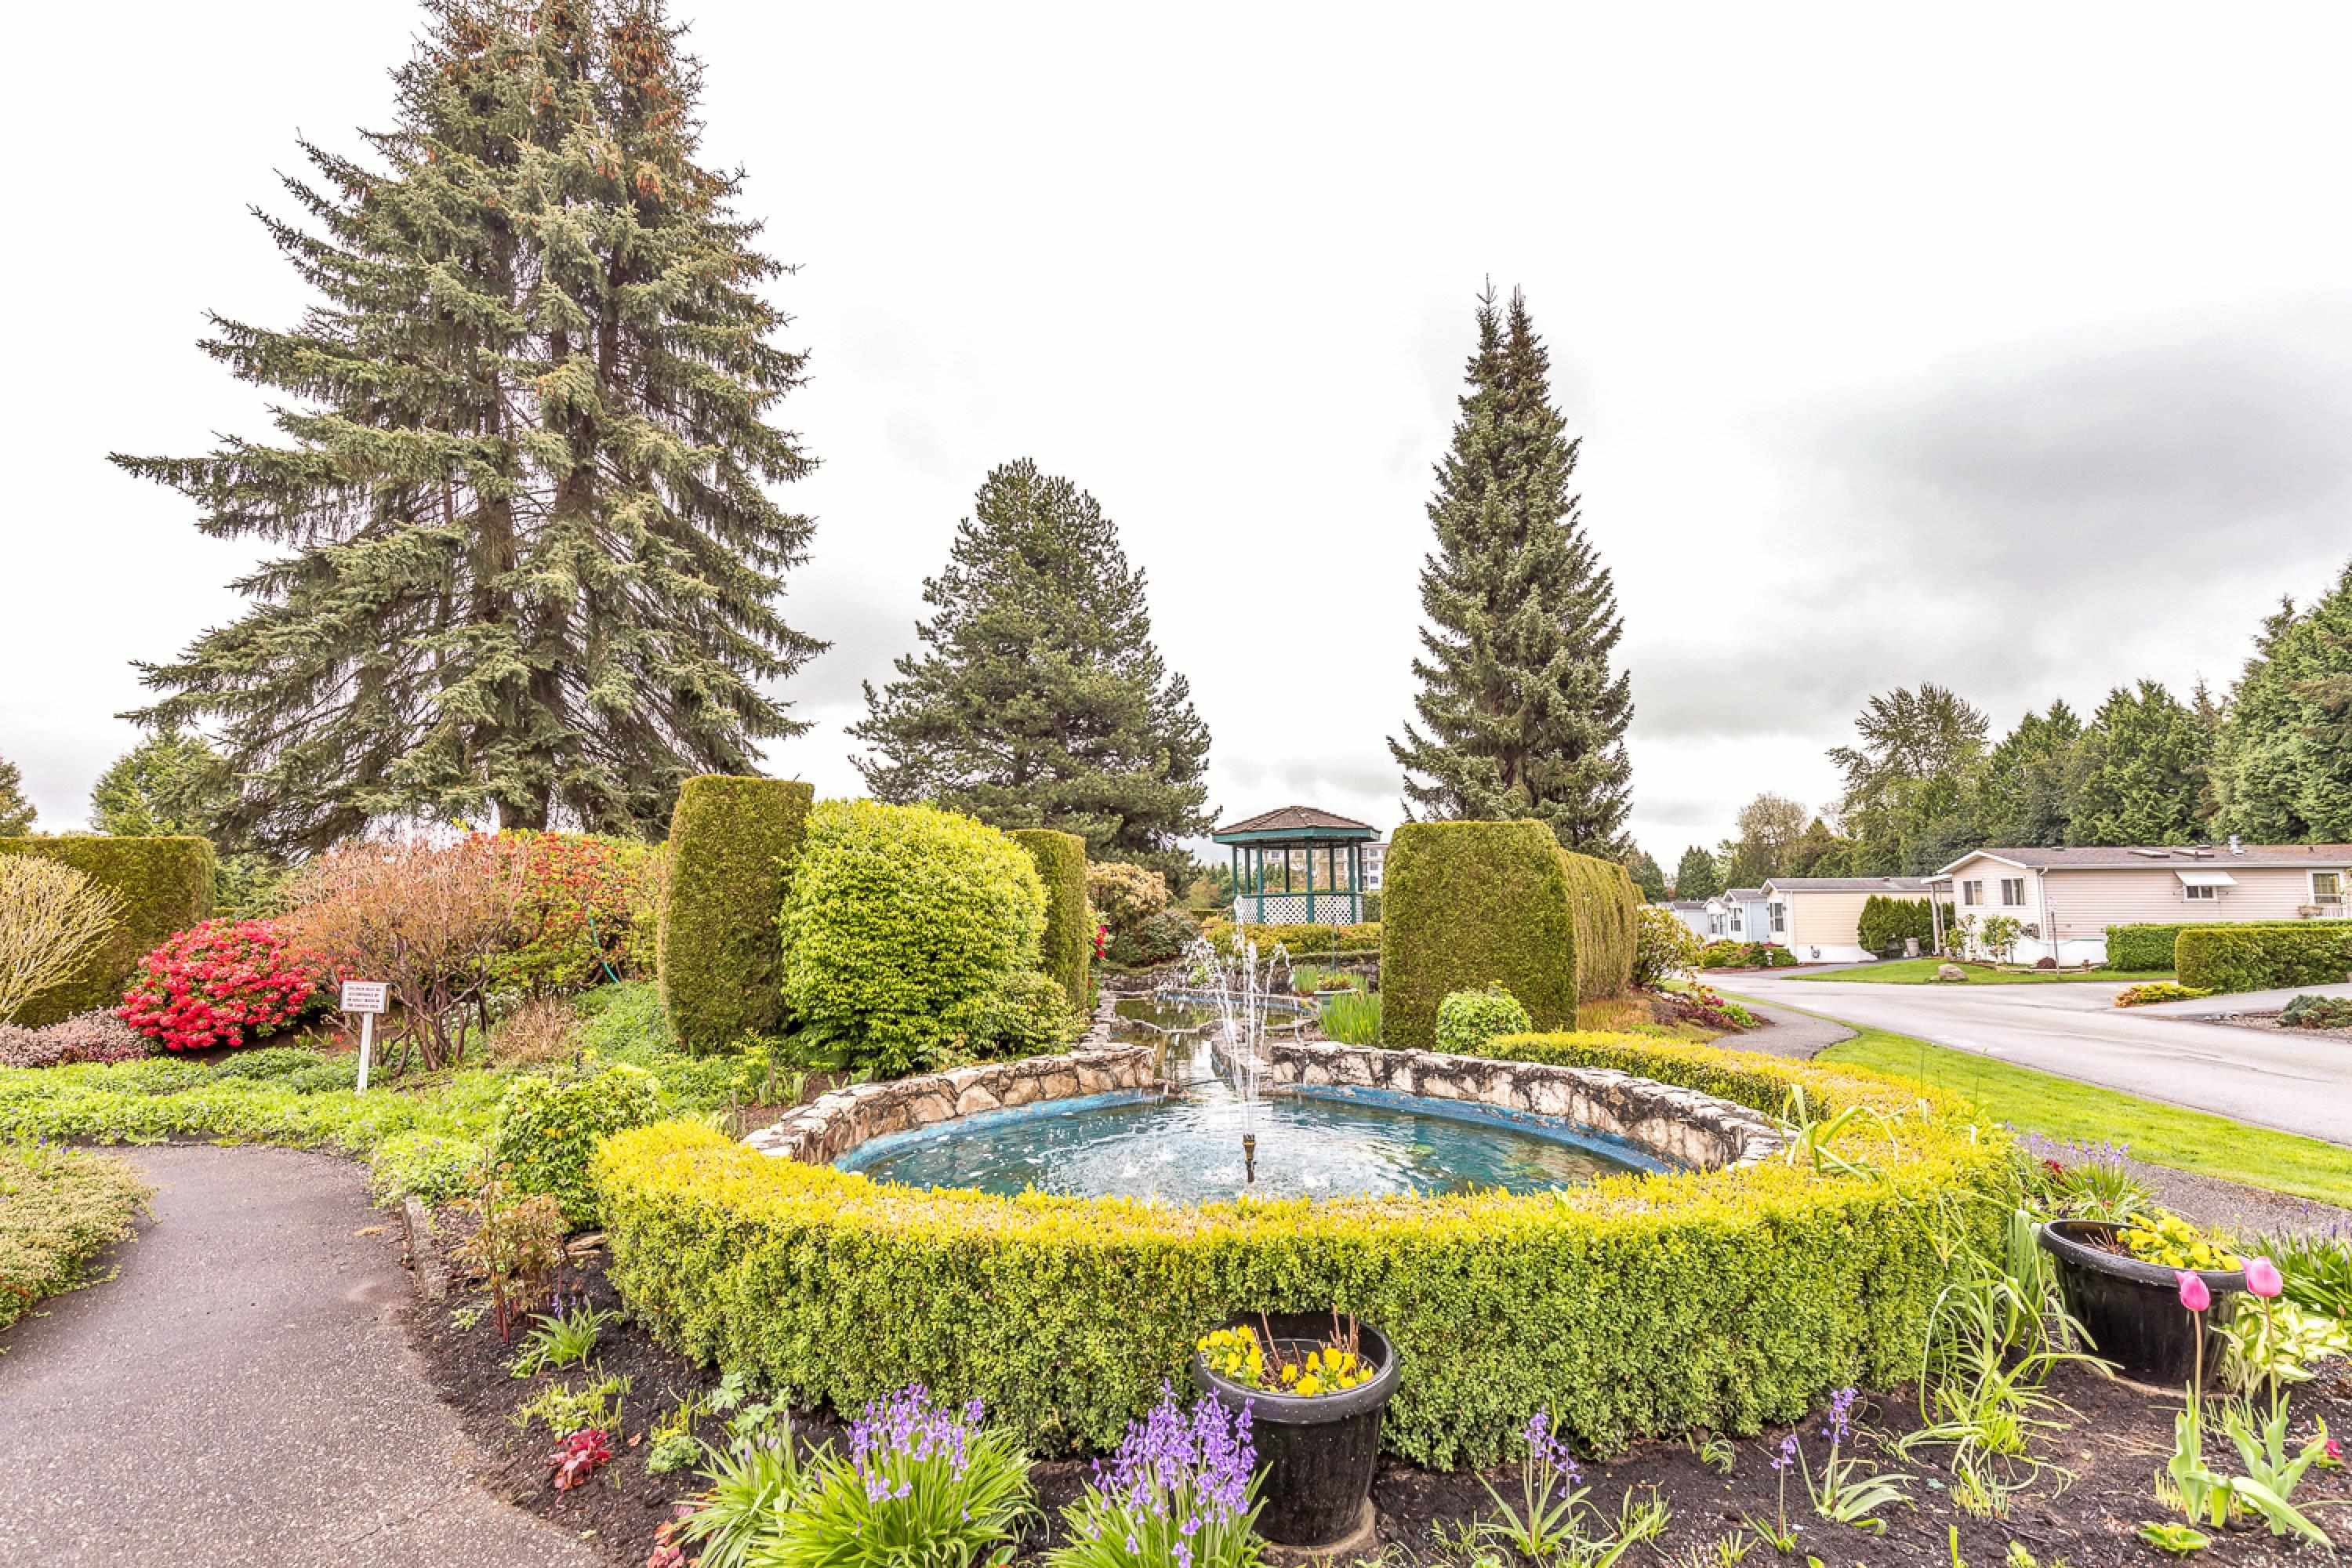 44 13507 81 AVENUE - Queen Mary Park Surrey Manufactured with Land for sale, 2 Bedrooms (R2624906) - #36